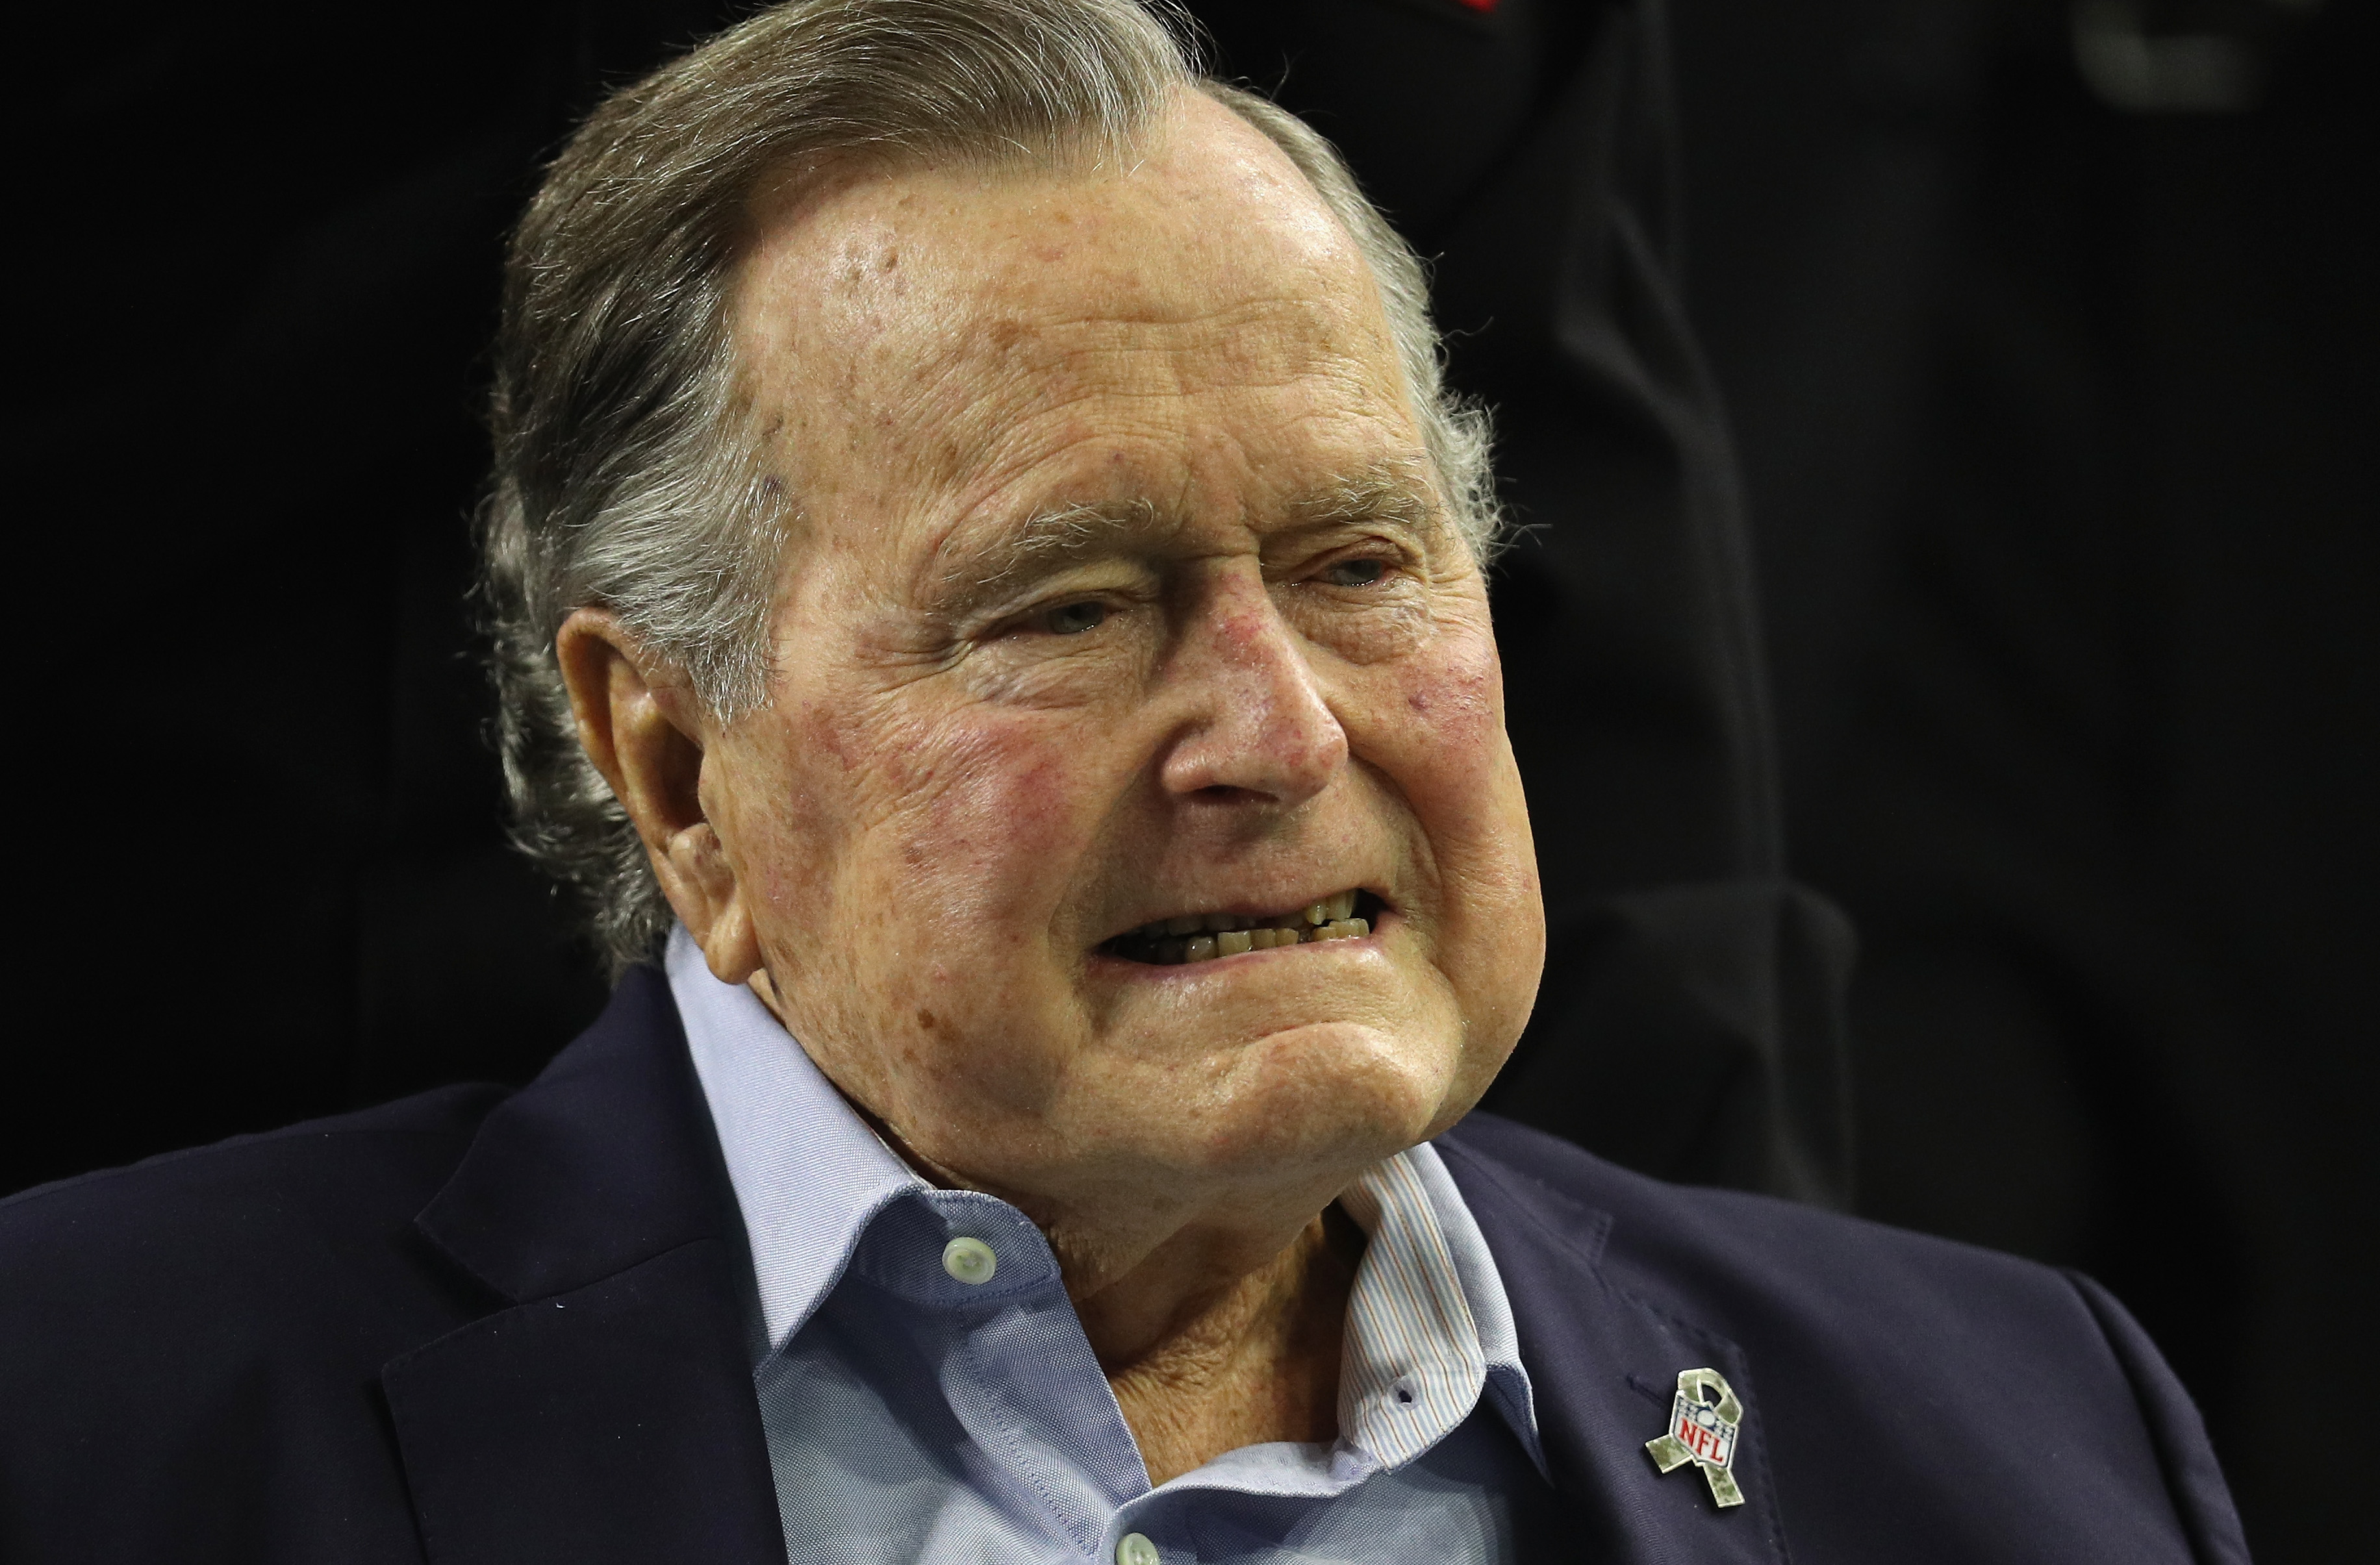 President George H.W. Bush arrives for the coin toss prior to Super Bowl 51.